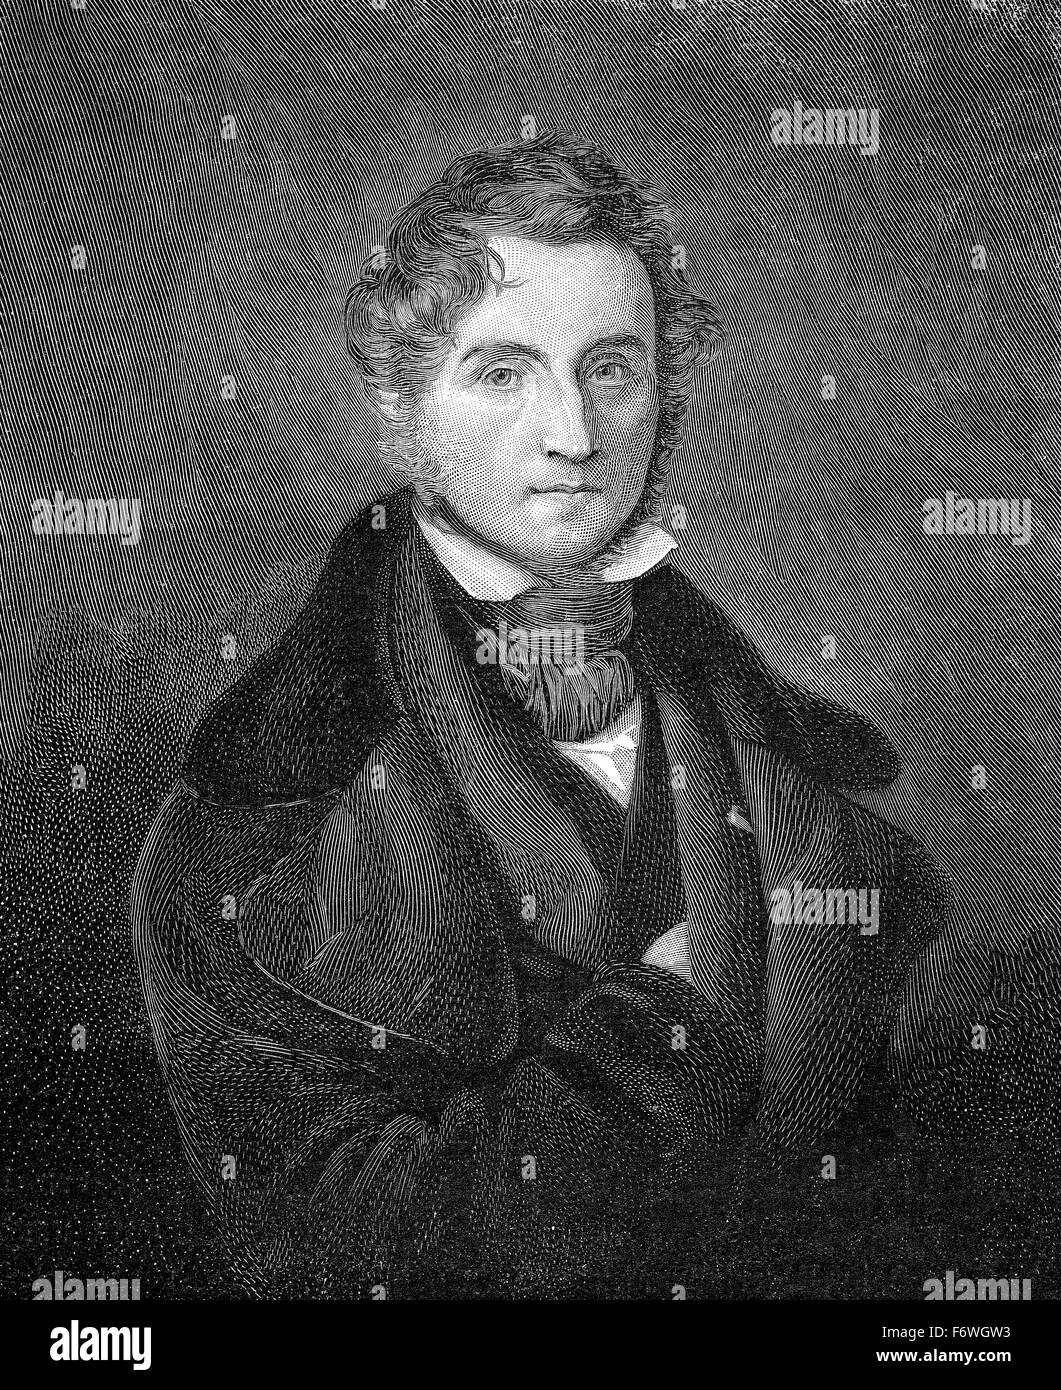 Justus von Liebig, 1803 - 1873, a German chemist and professor, - Stock Image